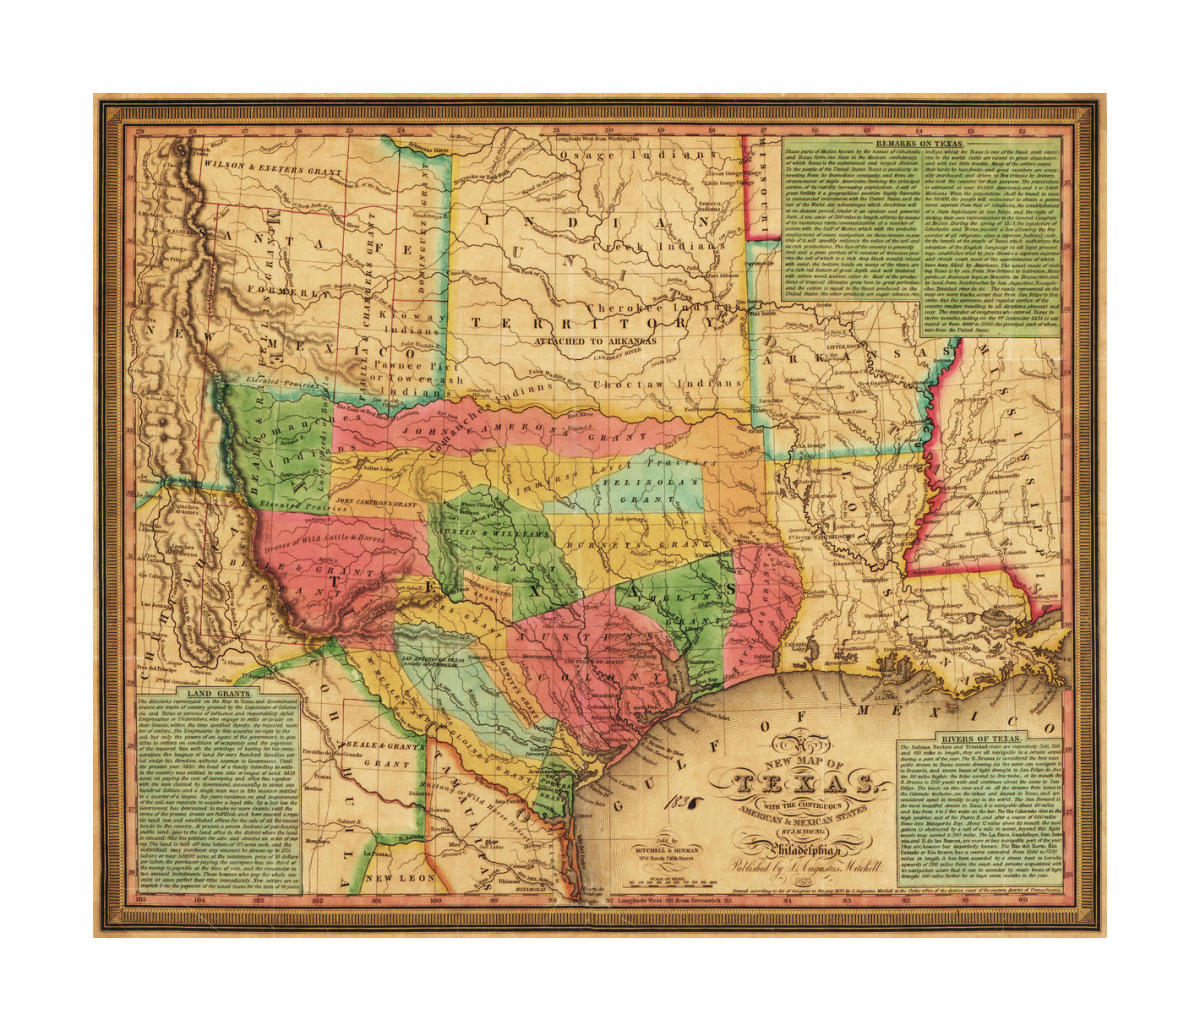 New Map Of Texas.S Augustus Mitchell New Map Of Texas With The Contiguous American Mexican States 1835